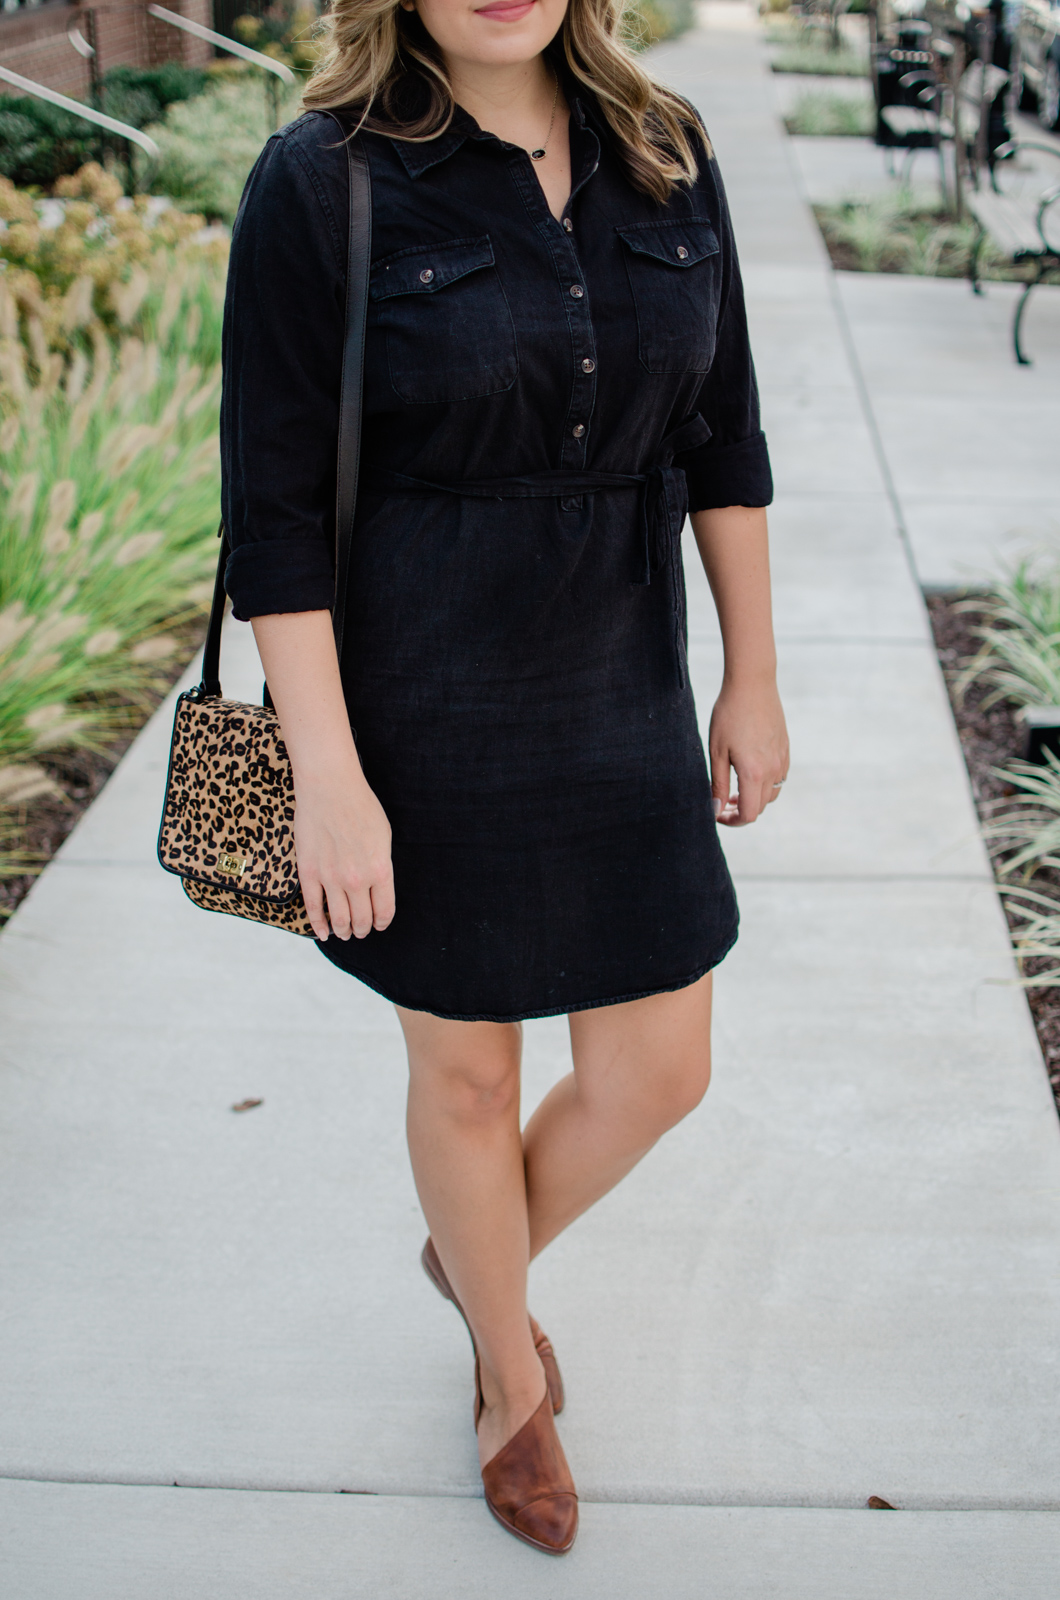 black denim shirt dress outfit for fall - cute fall casual shirtdress outfit | bylaurenm.com